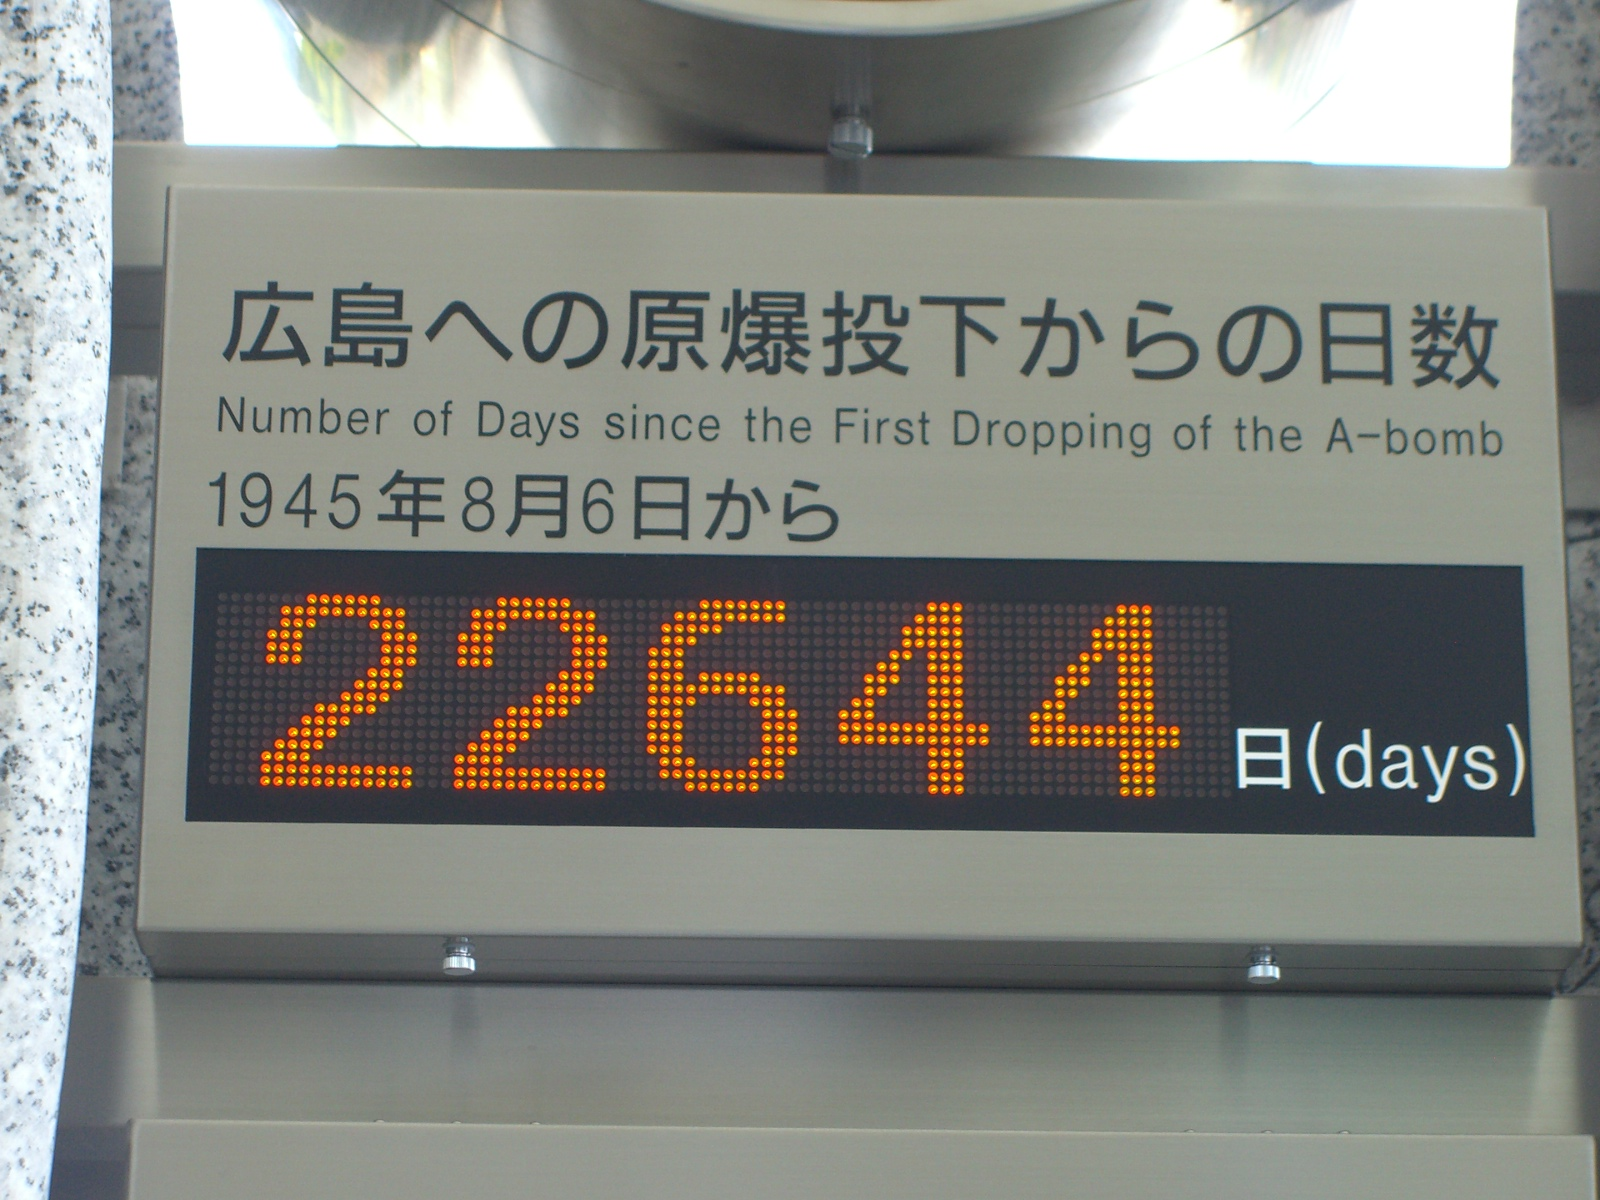 A-bomb counting clock